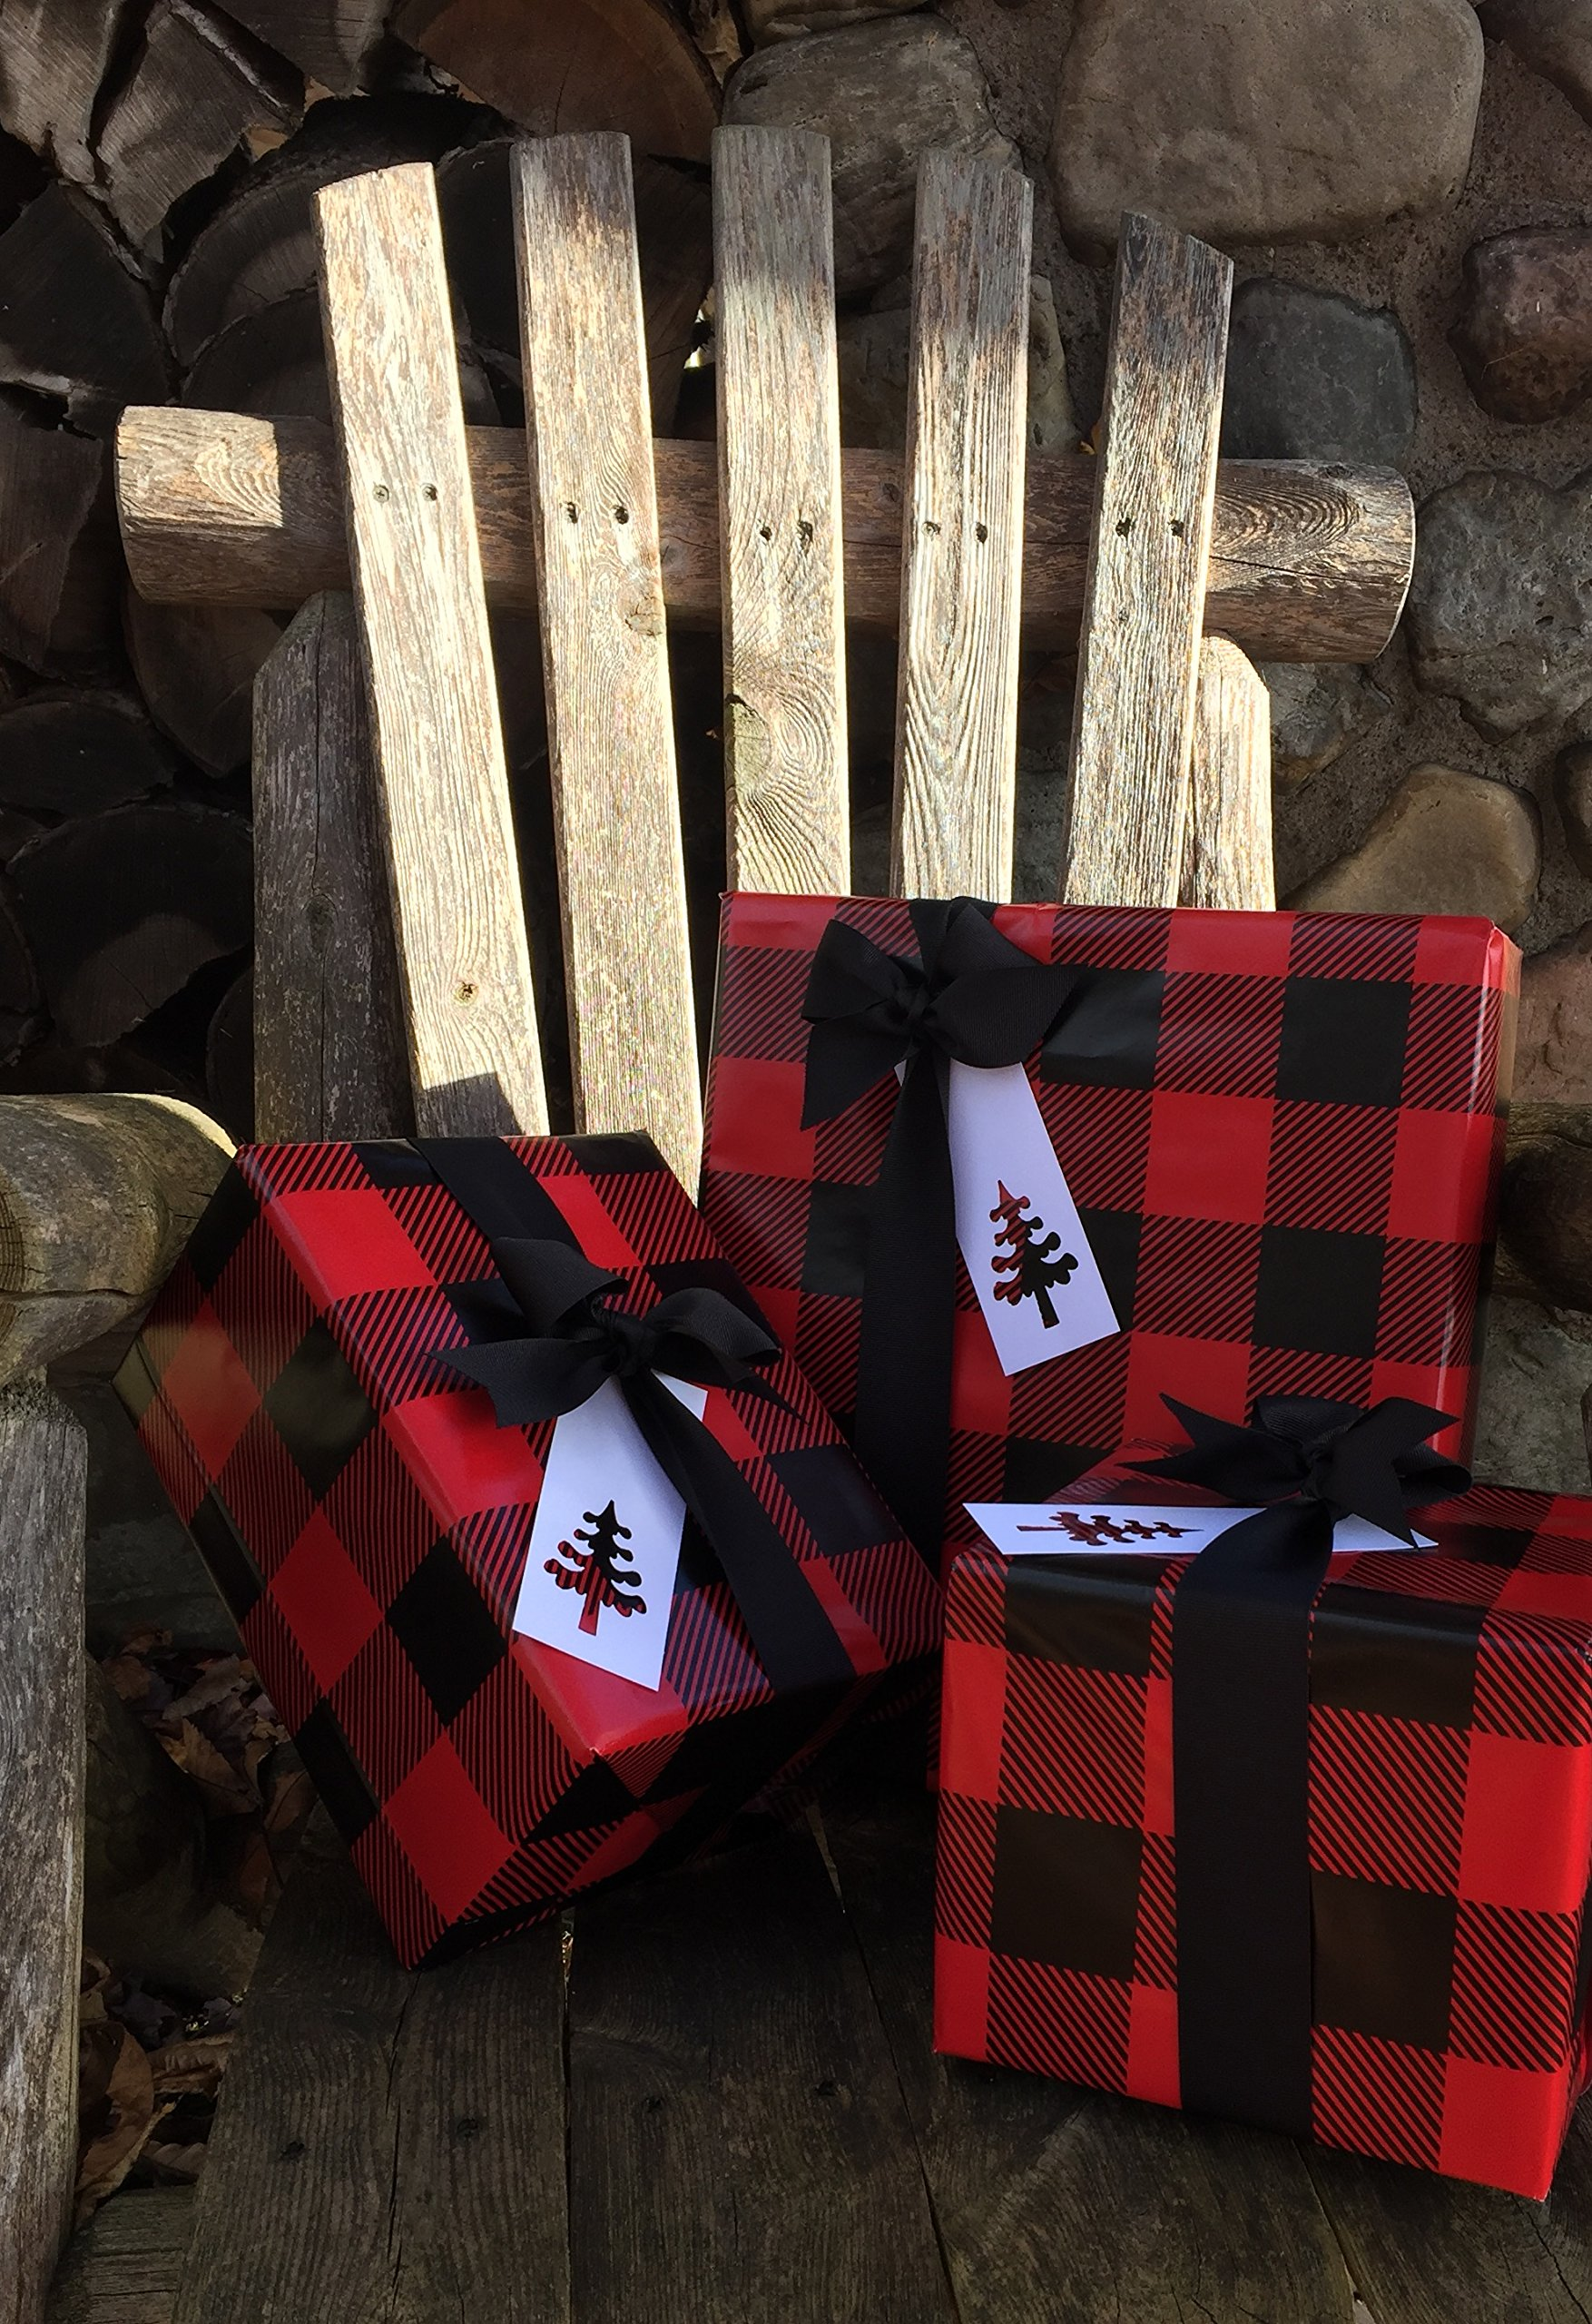 Lumberjack Gift Wrap Paper (Red Buffalo Plaid) for Christmas Gift Wrapping, 24'' x 85 FT, with Black Grosgrain Ribbon (50 YDS) and White Gift Tags (50) by Rustic Pearl Collection